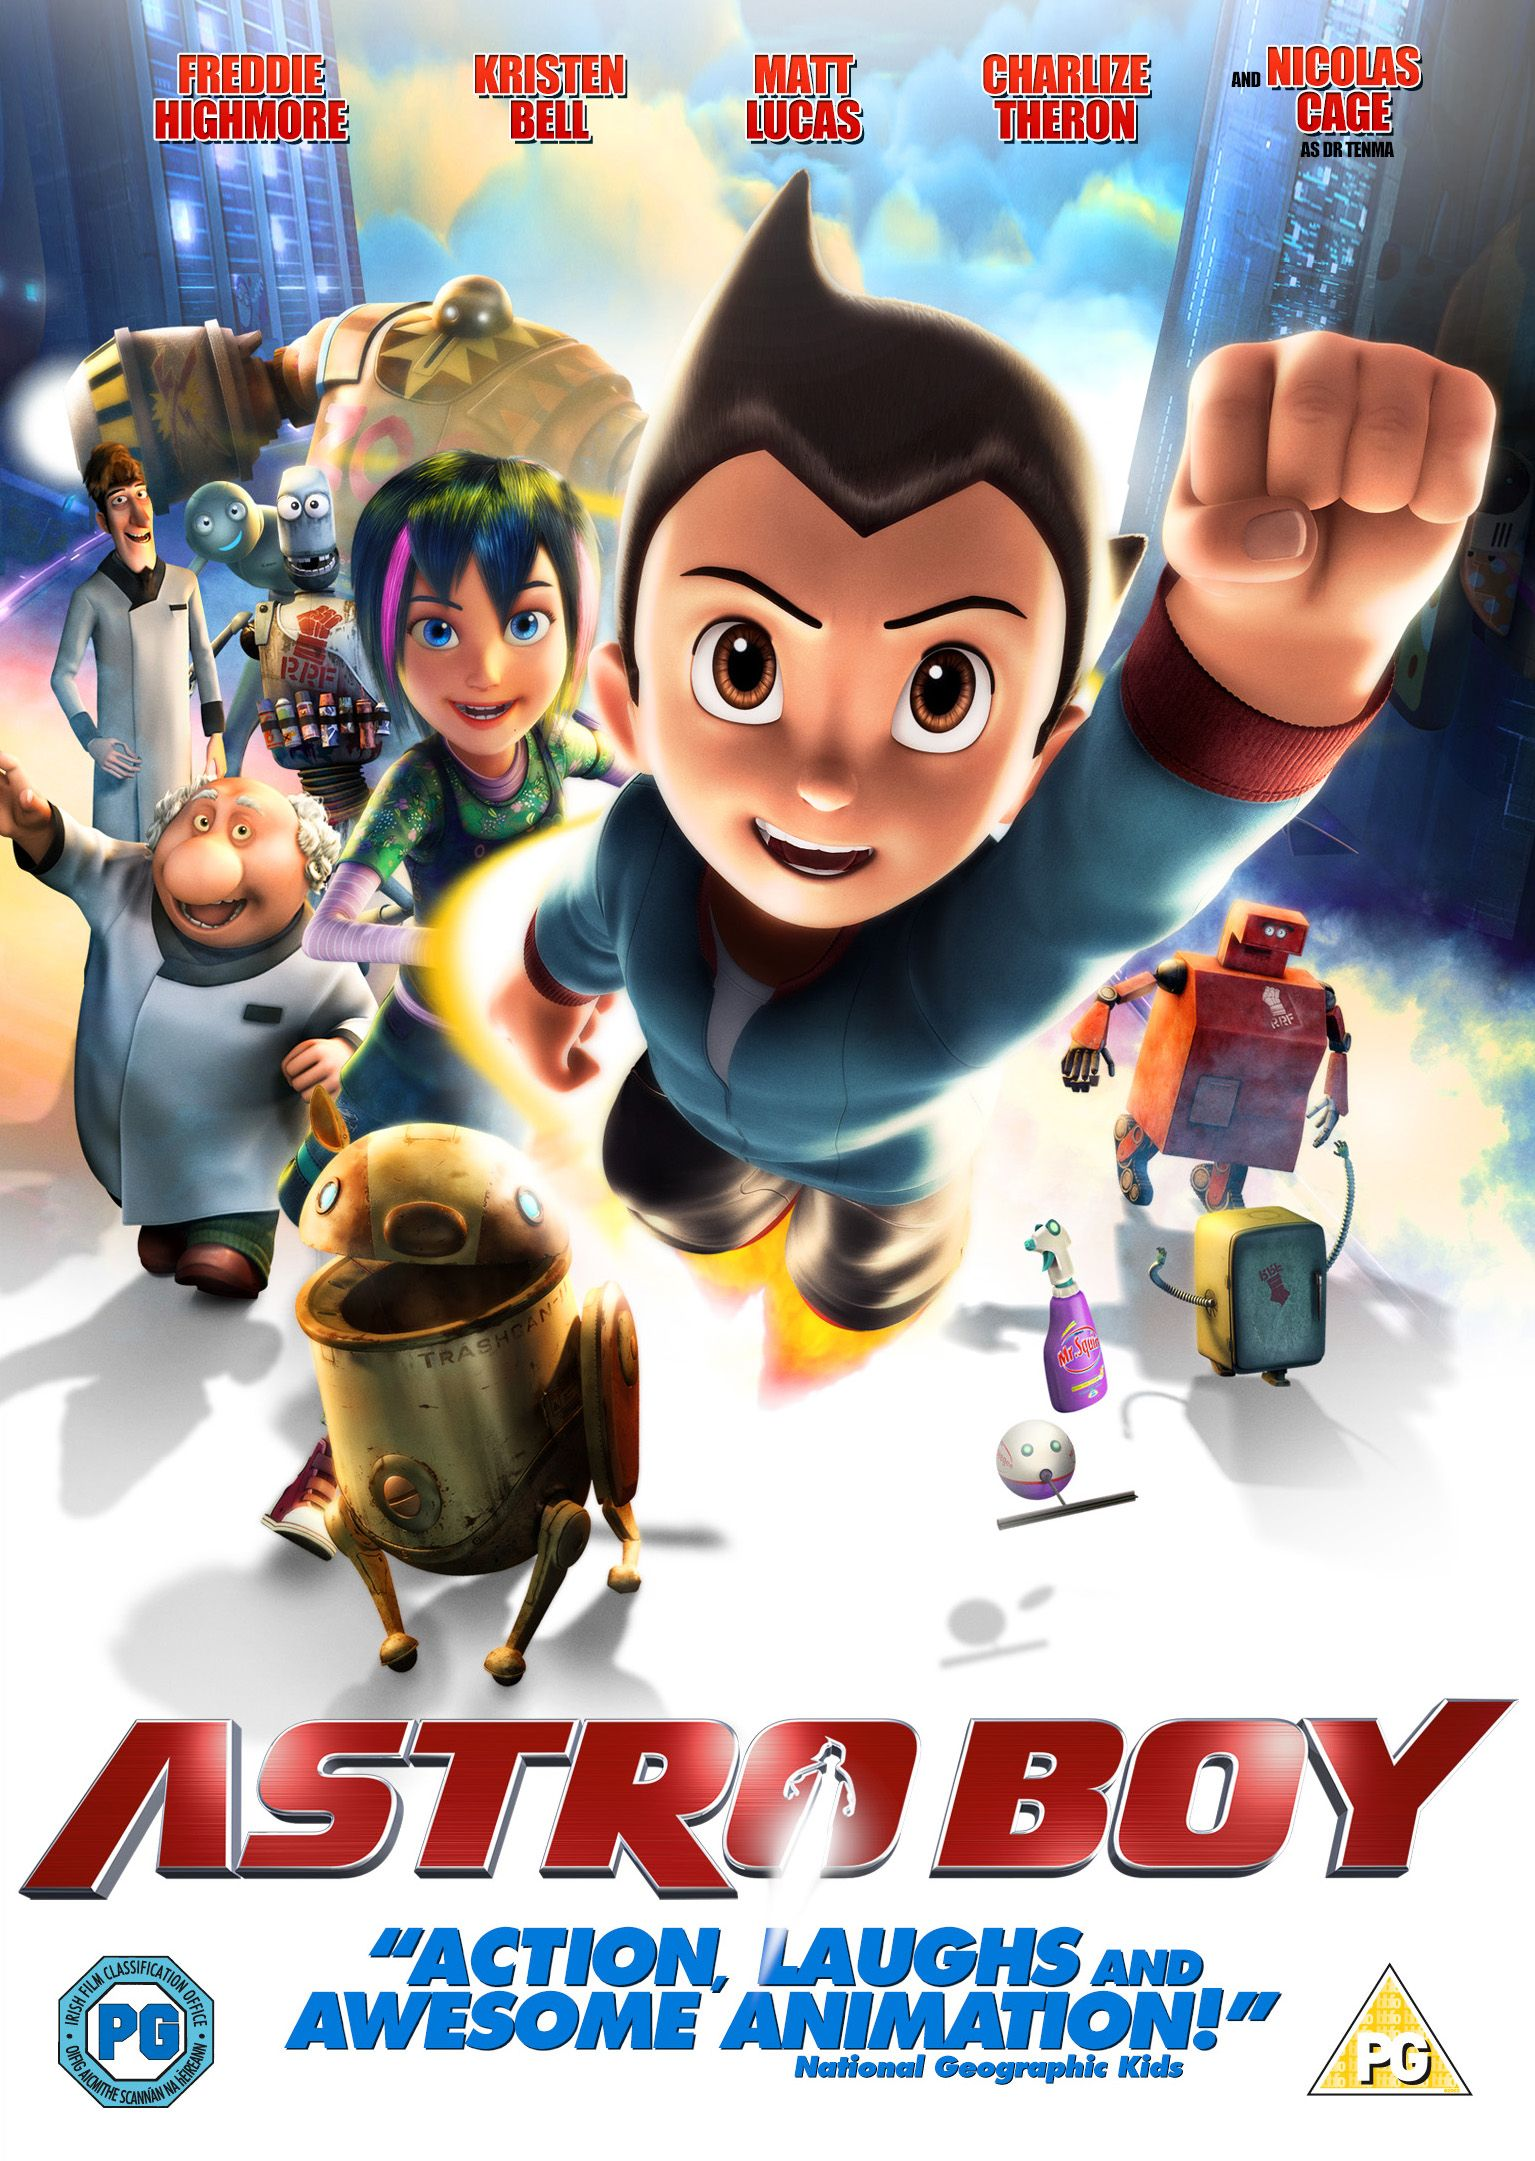 Astro boy seen twice better than i expected movies